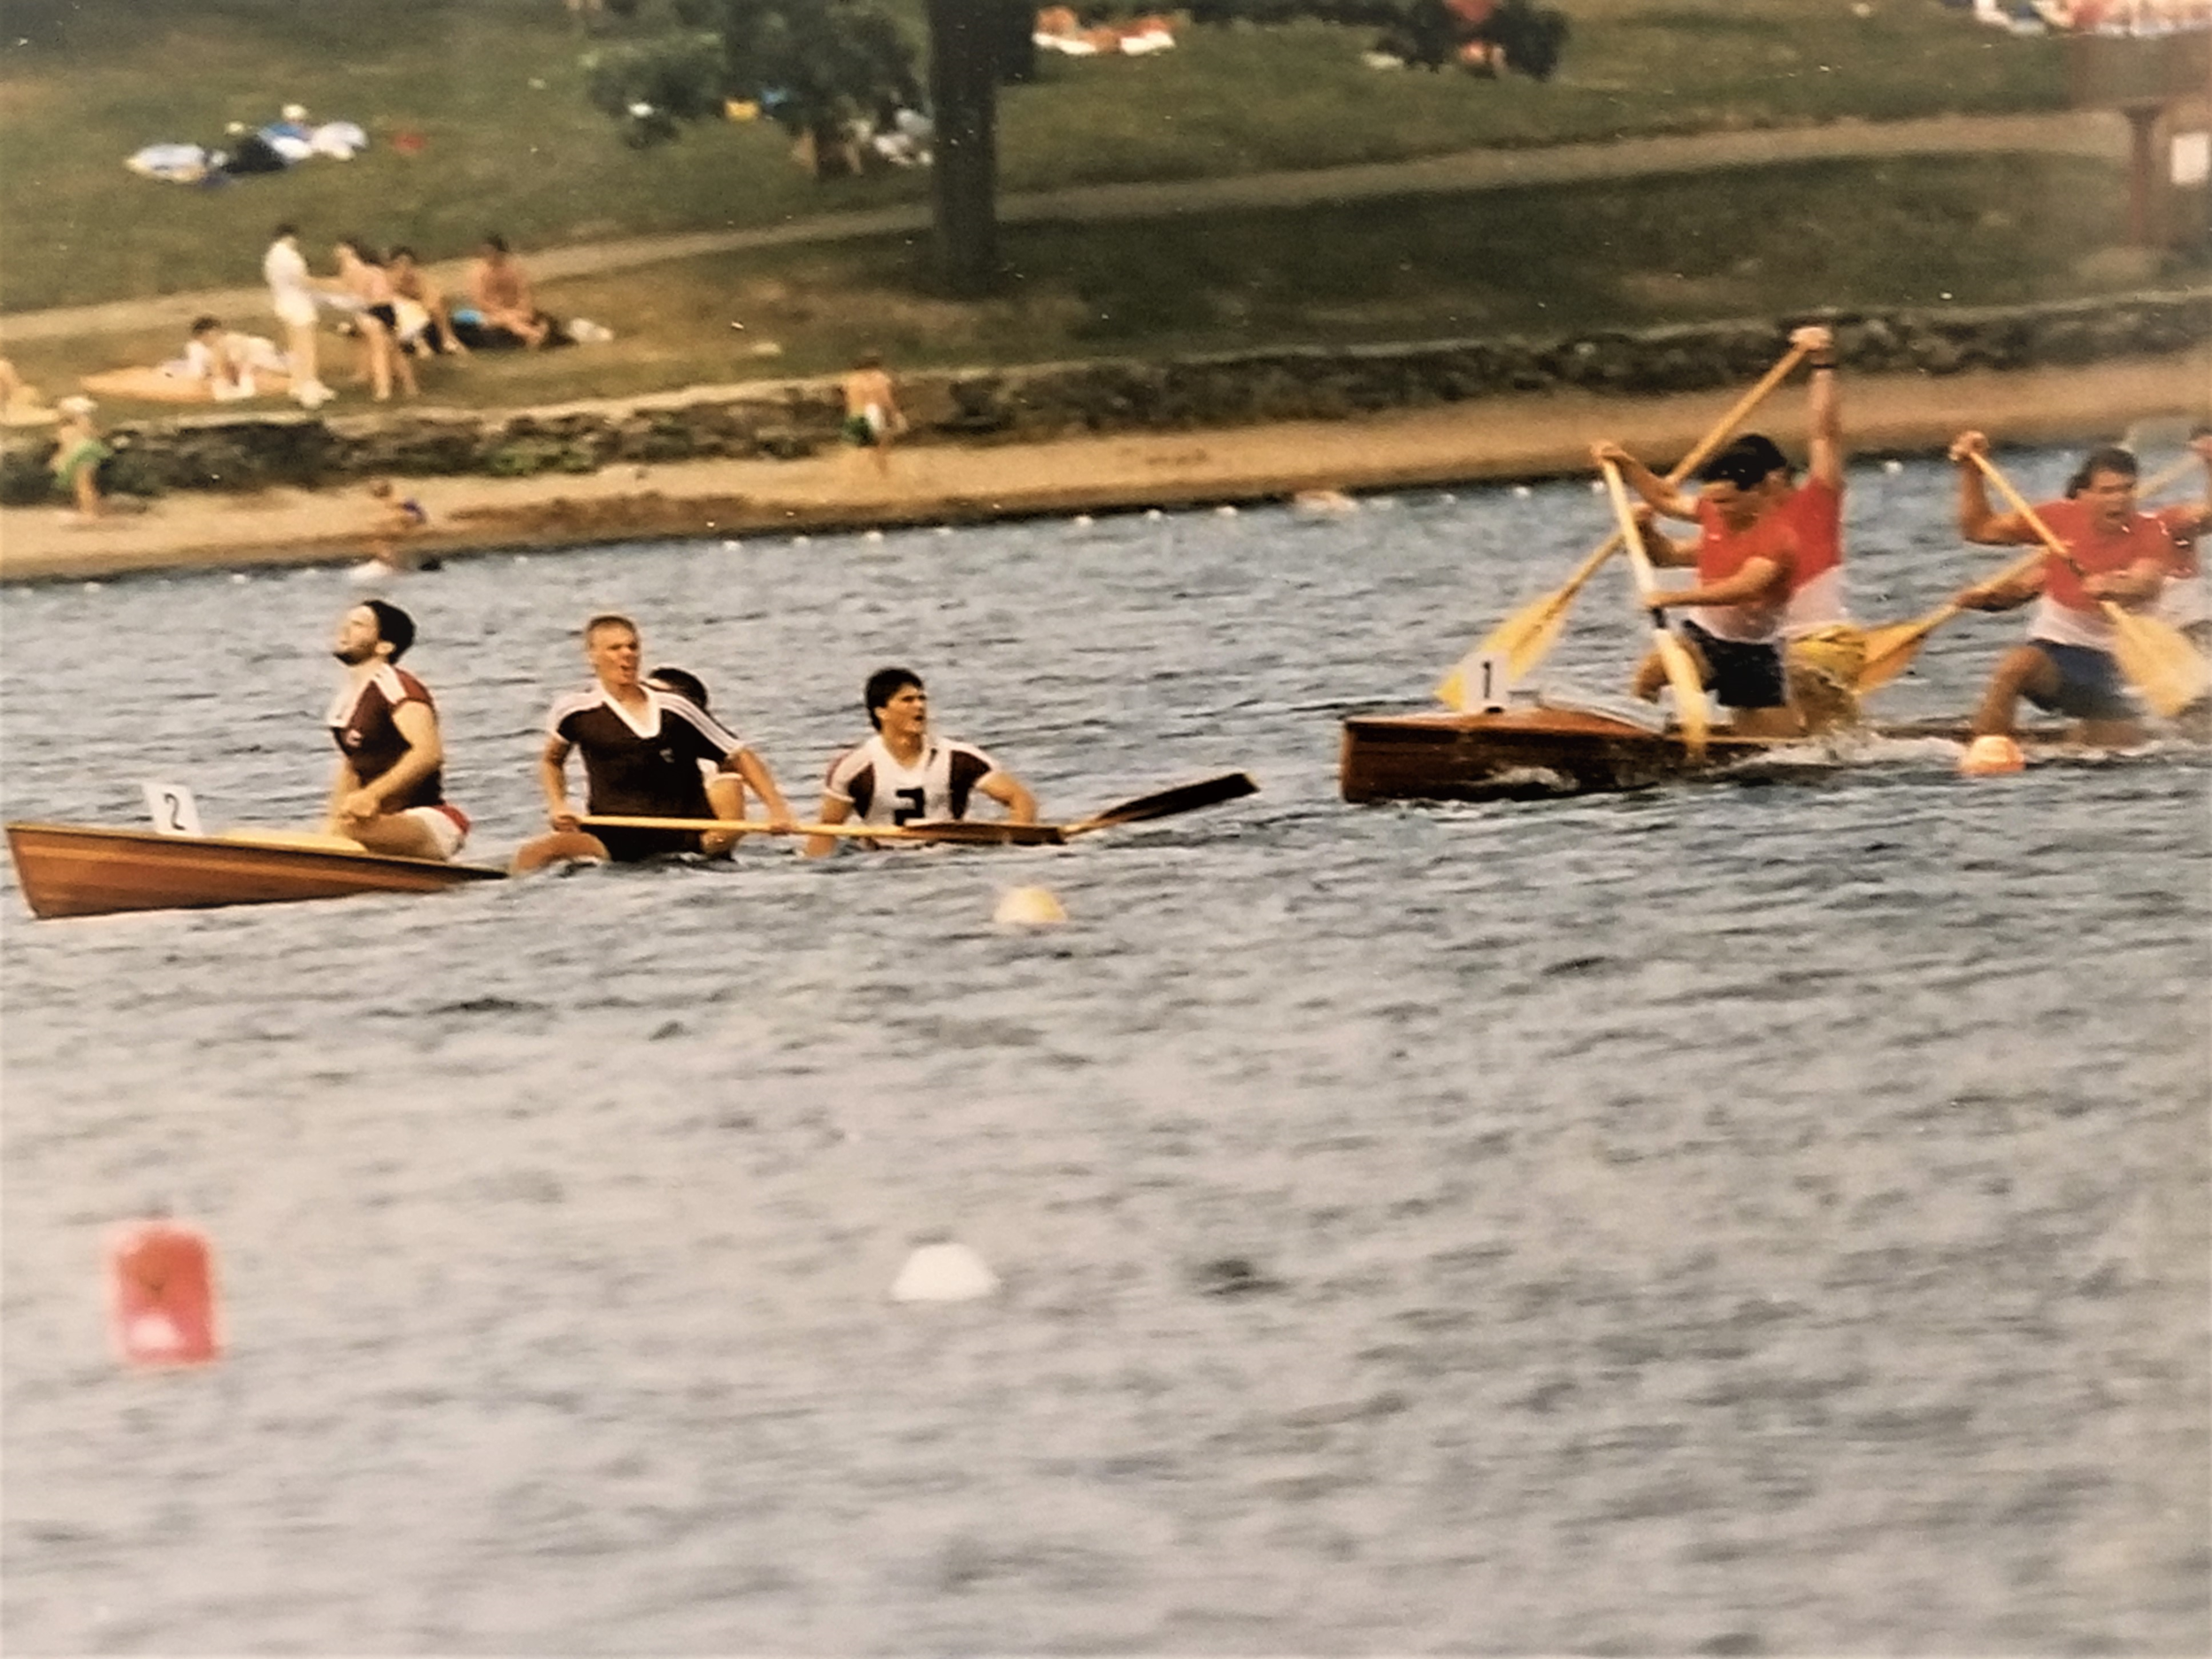 Orenda C-4 crew sinking in the last 100m of the 1000m Junior Mens C-4. From left to right: Bryan Burns, Steve Giles, Kevin Mullen (hidden), Glen Girard, and the Banook crew. Dartmouth nationals 1988.